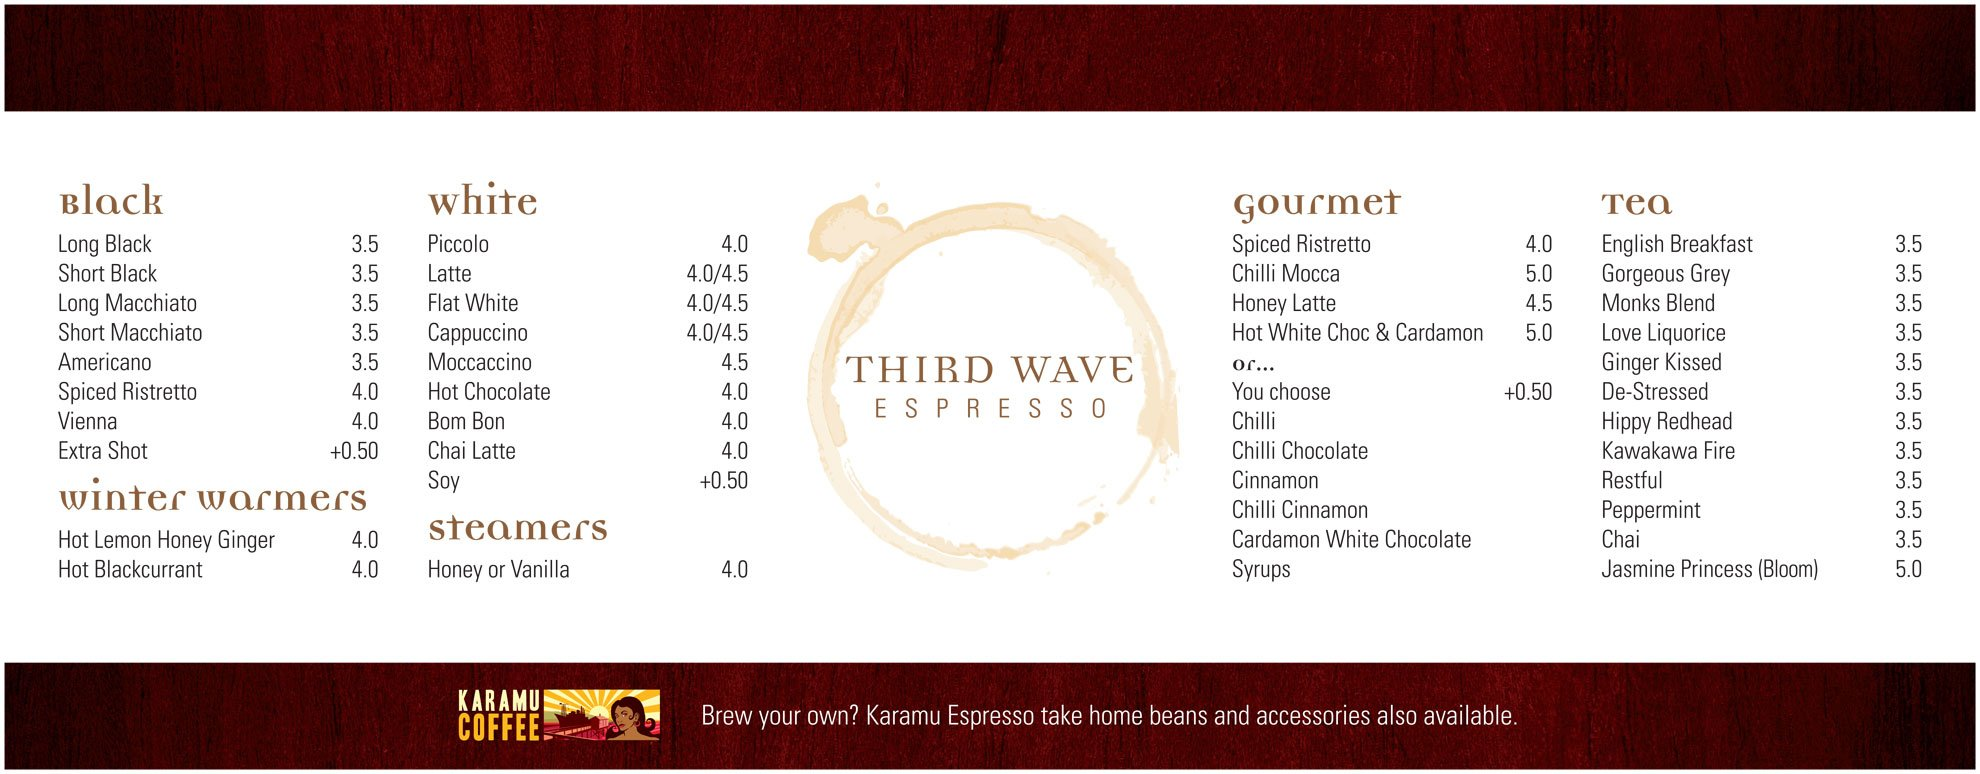 Digitally printed menu applied to backing board